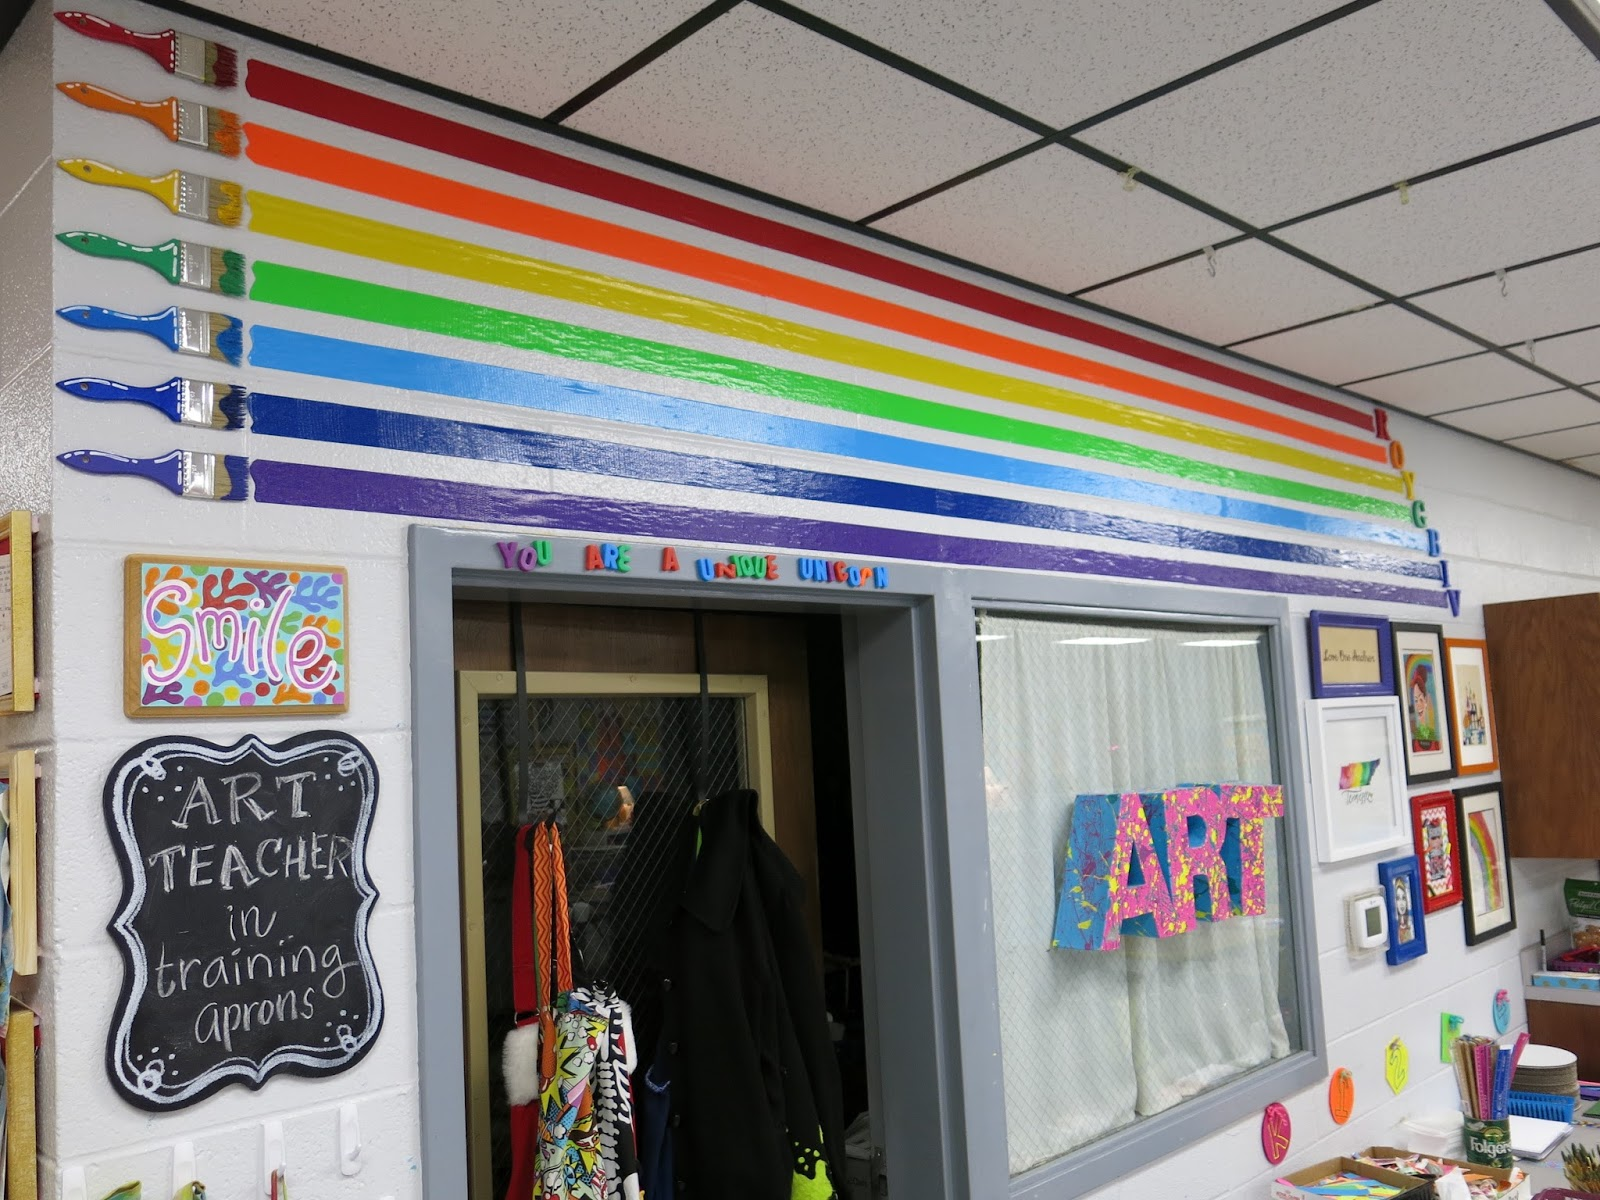 This Area Of My Art Room, I Call The Store As Thatu0027s Where The Kids Go To  Gather Their Art Supplies. You Can Learn More About Art Teachers In  Training Here ...